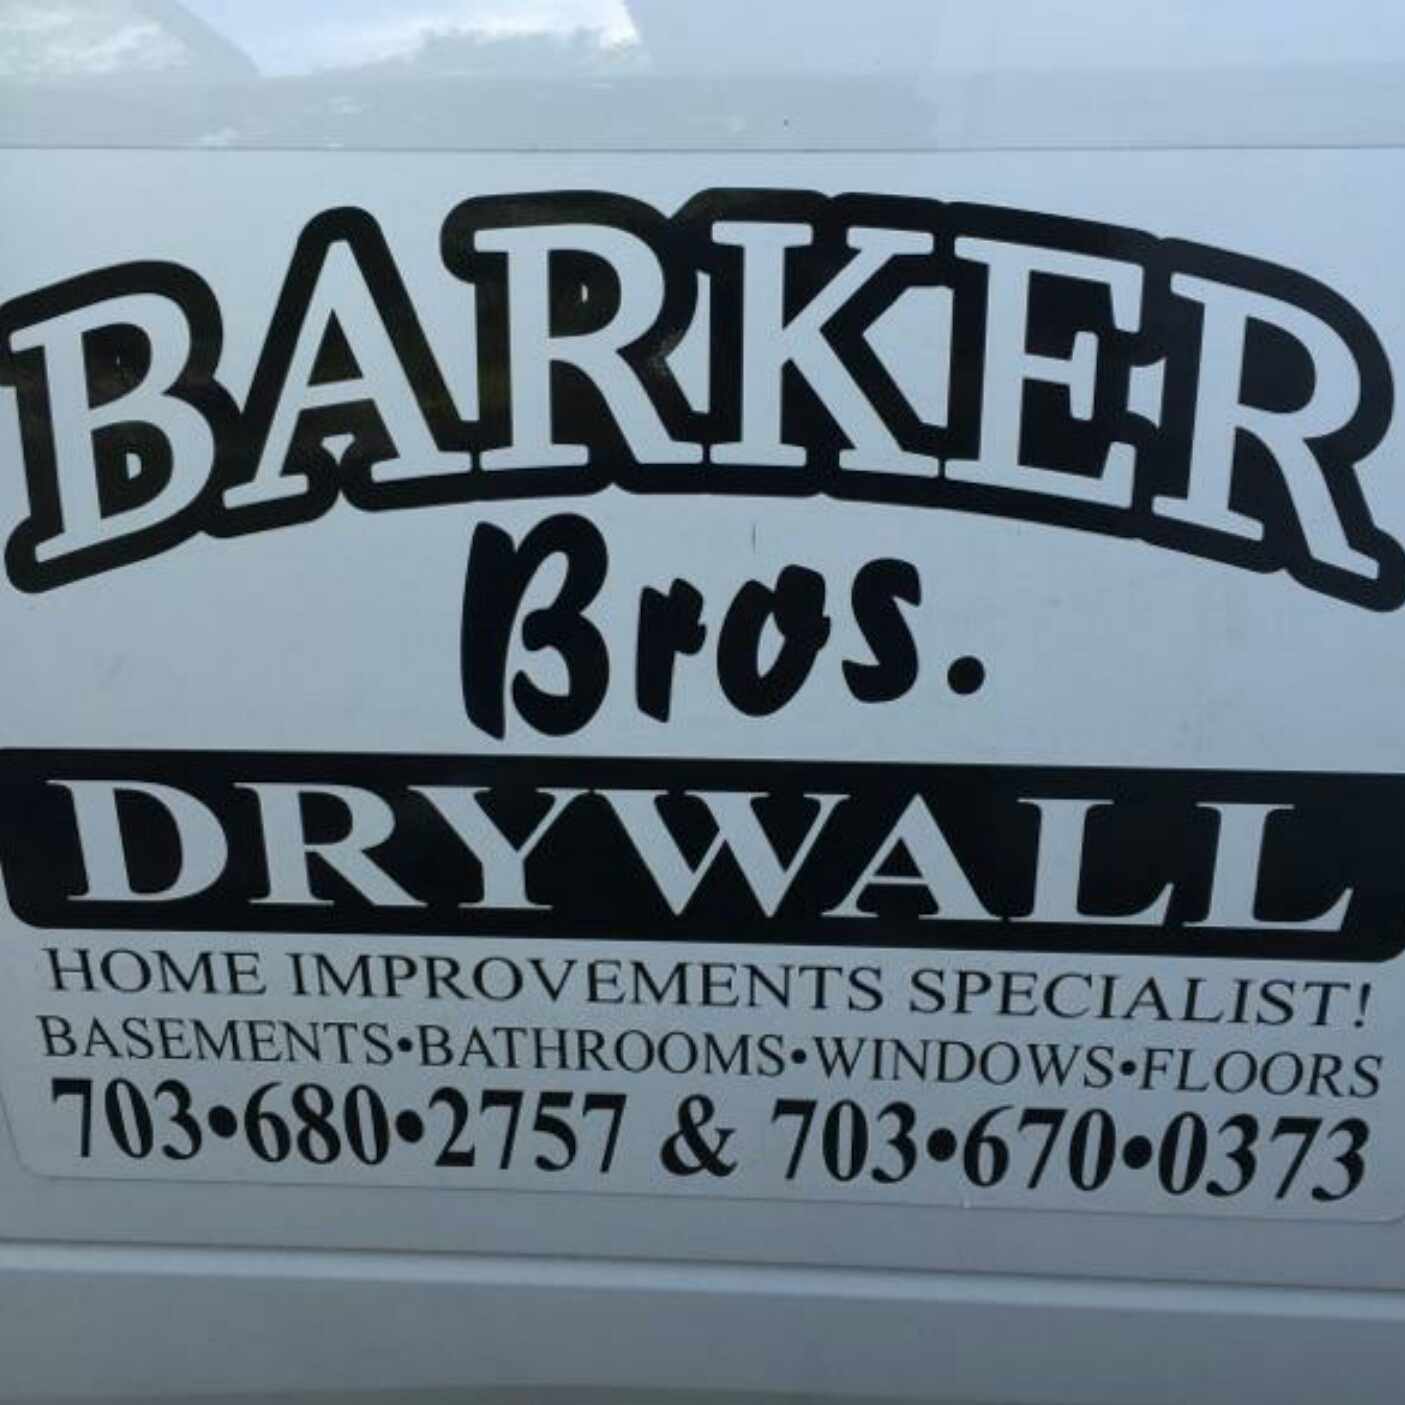 Barker Brothers Drywall LLC